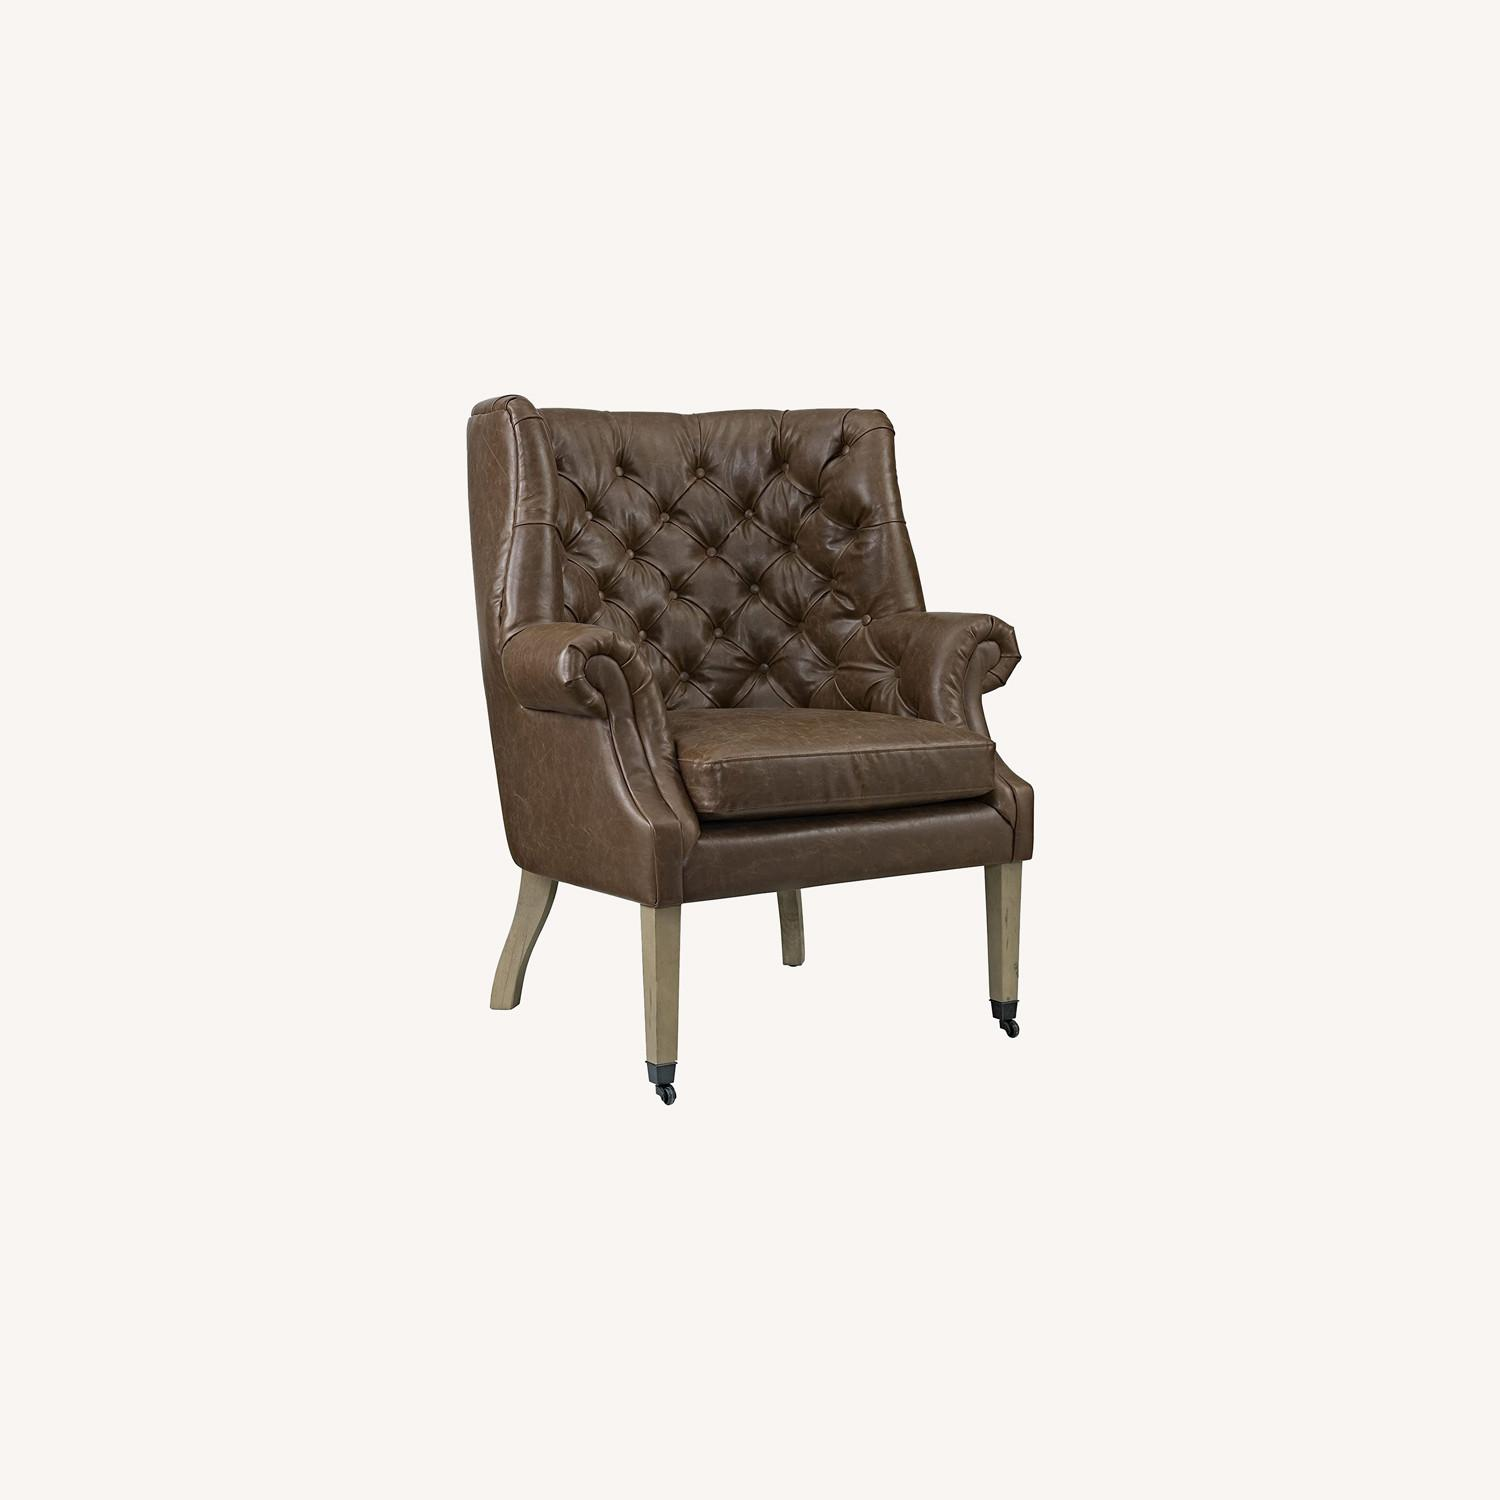 Accent Chair In Brown Vinyl Upholstery Finish - image-5